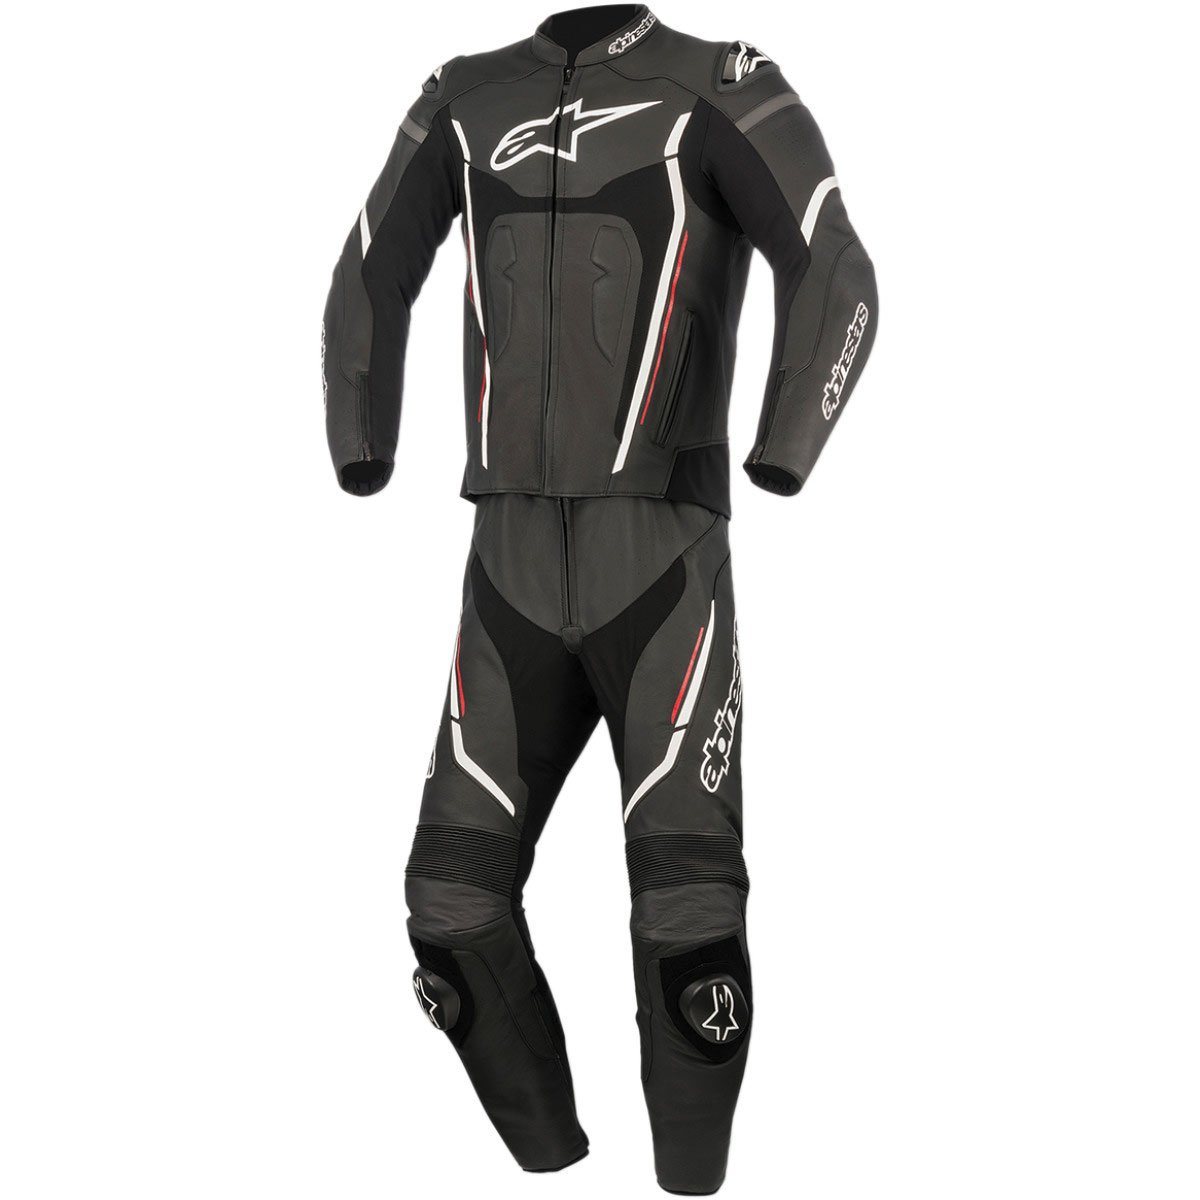 Alpinestars Montegi V2 Men's 2-Piece Street Motorcycle Race Suits - Black/White/Red / 48